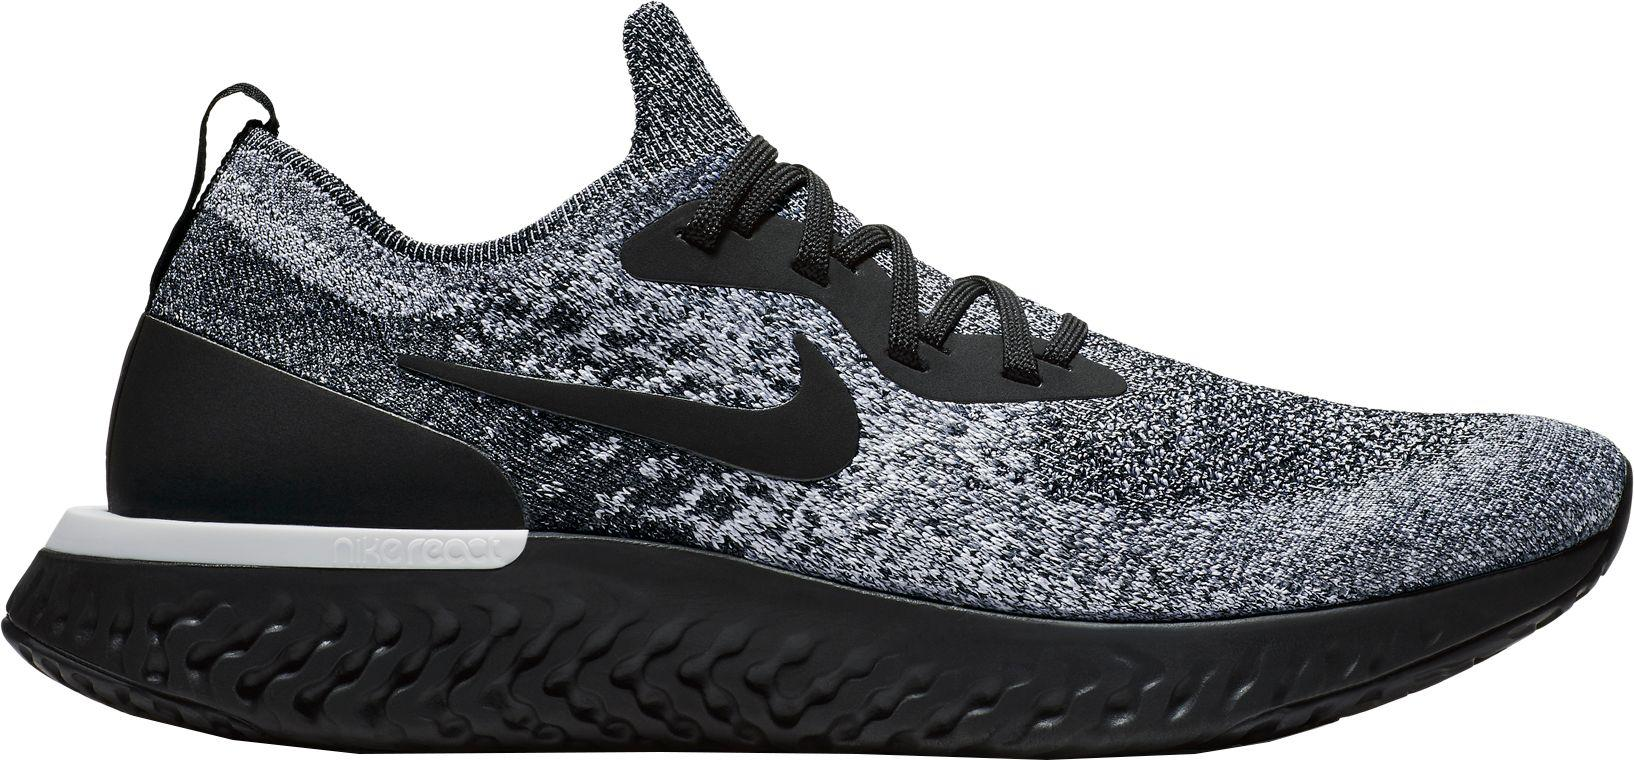 7e85ee7328a8 Lyst - Nike Epic React Flyknit Running Shoes in Black for Men